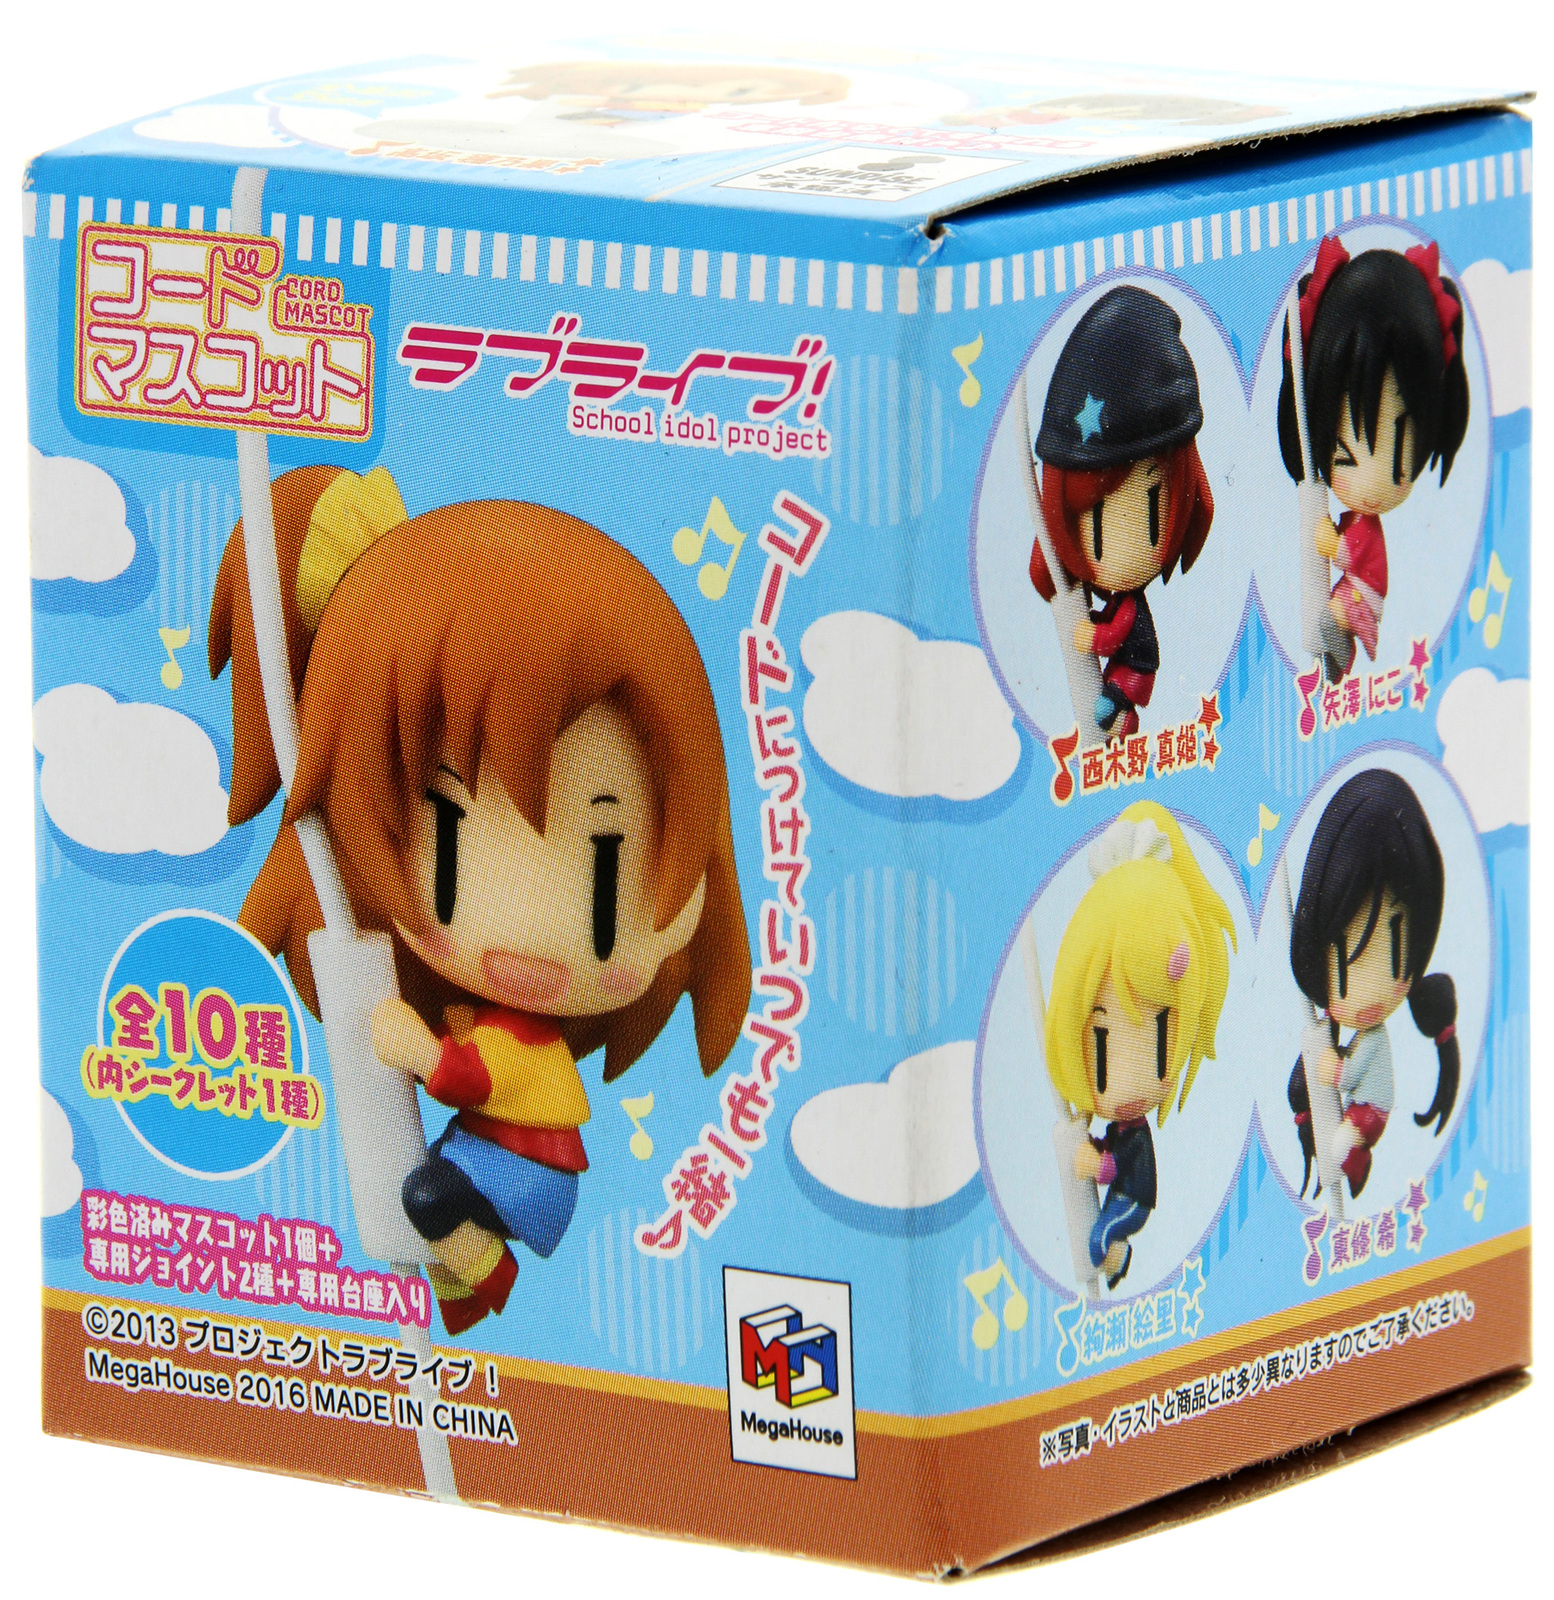 pint pdq fighter heroes funko size anime vinyl box blinds streete figure blind street